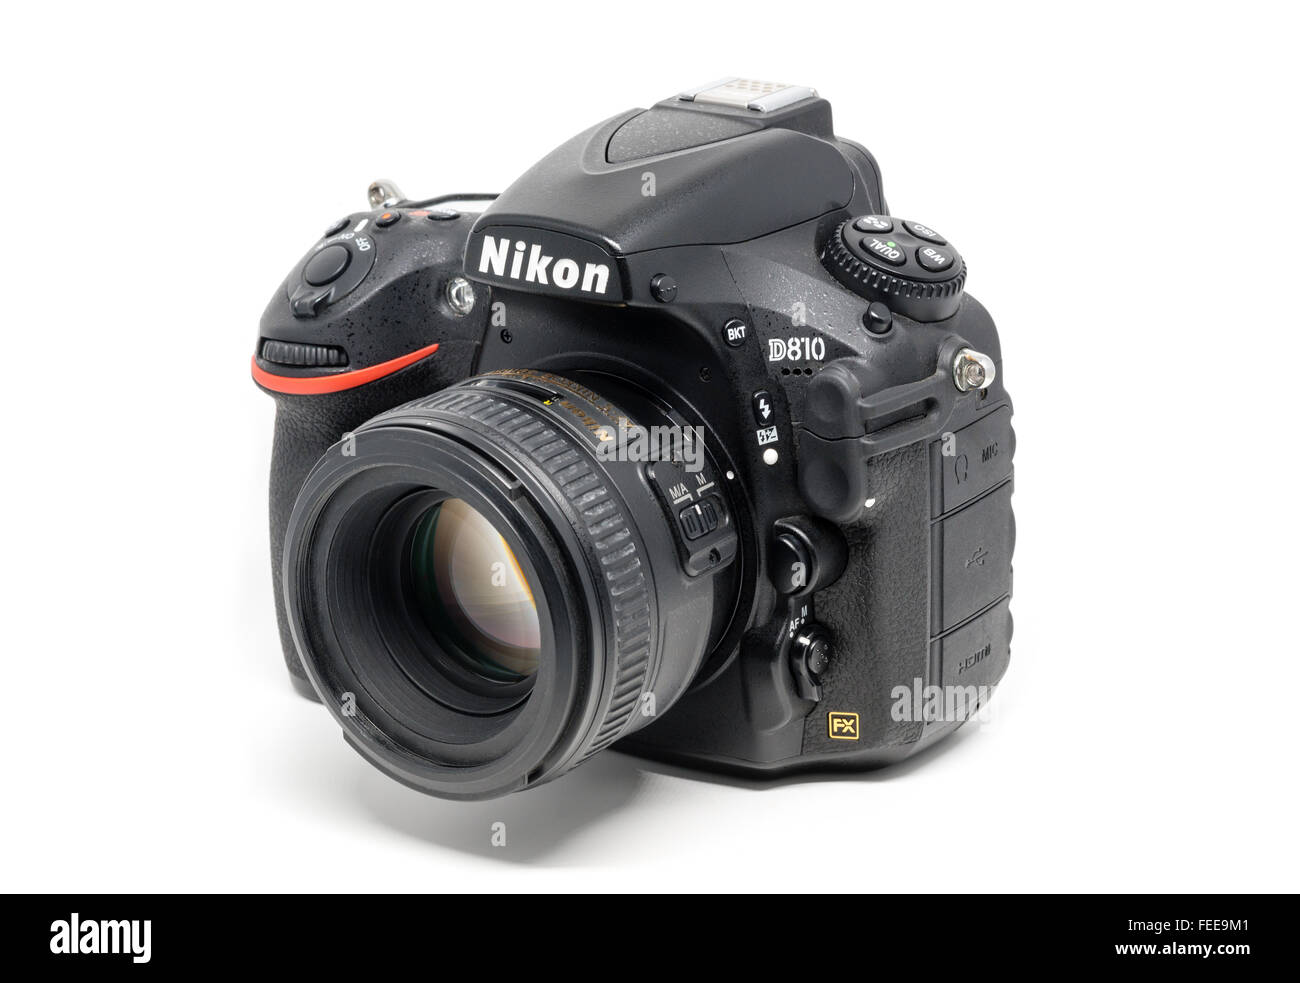 Ostfildern, Germany - January 24, 2016: A Nikon D810 camera body with Nikkor 50mm 1:1,4 lens, the first digital - Stock Image